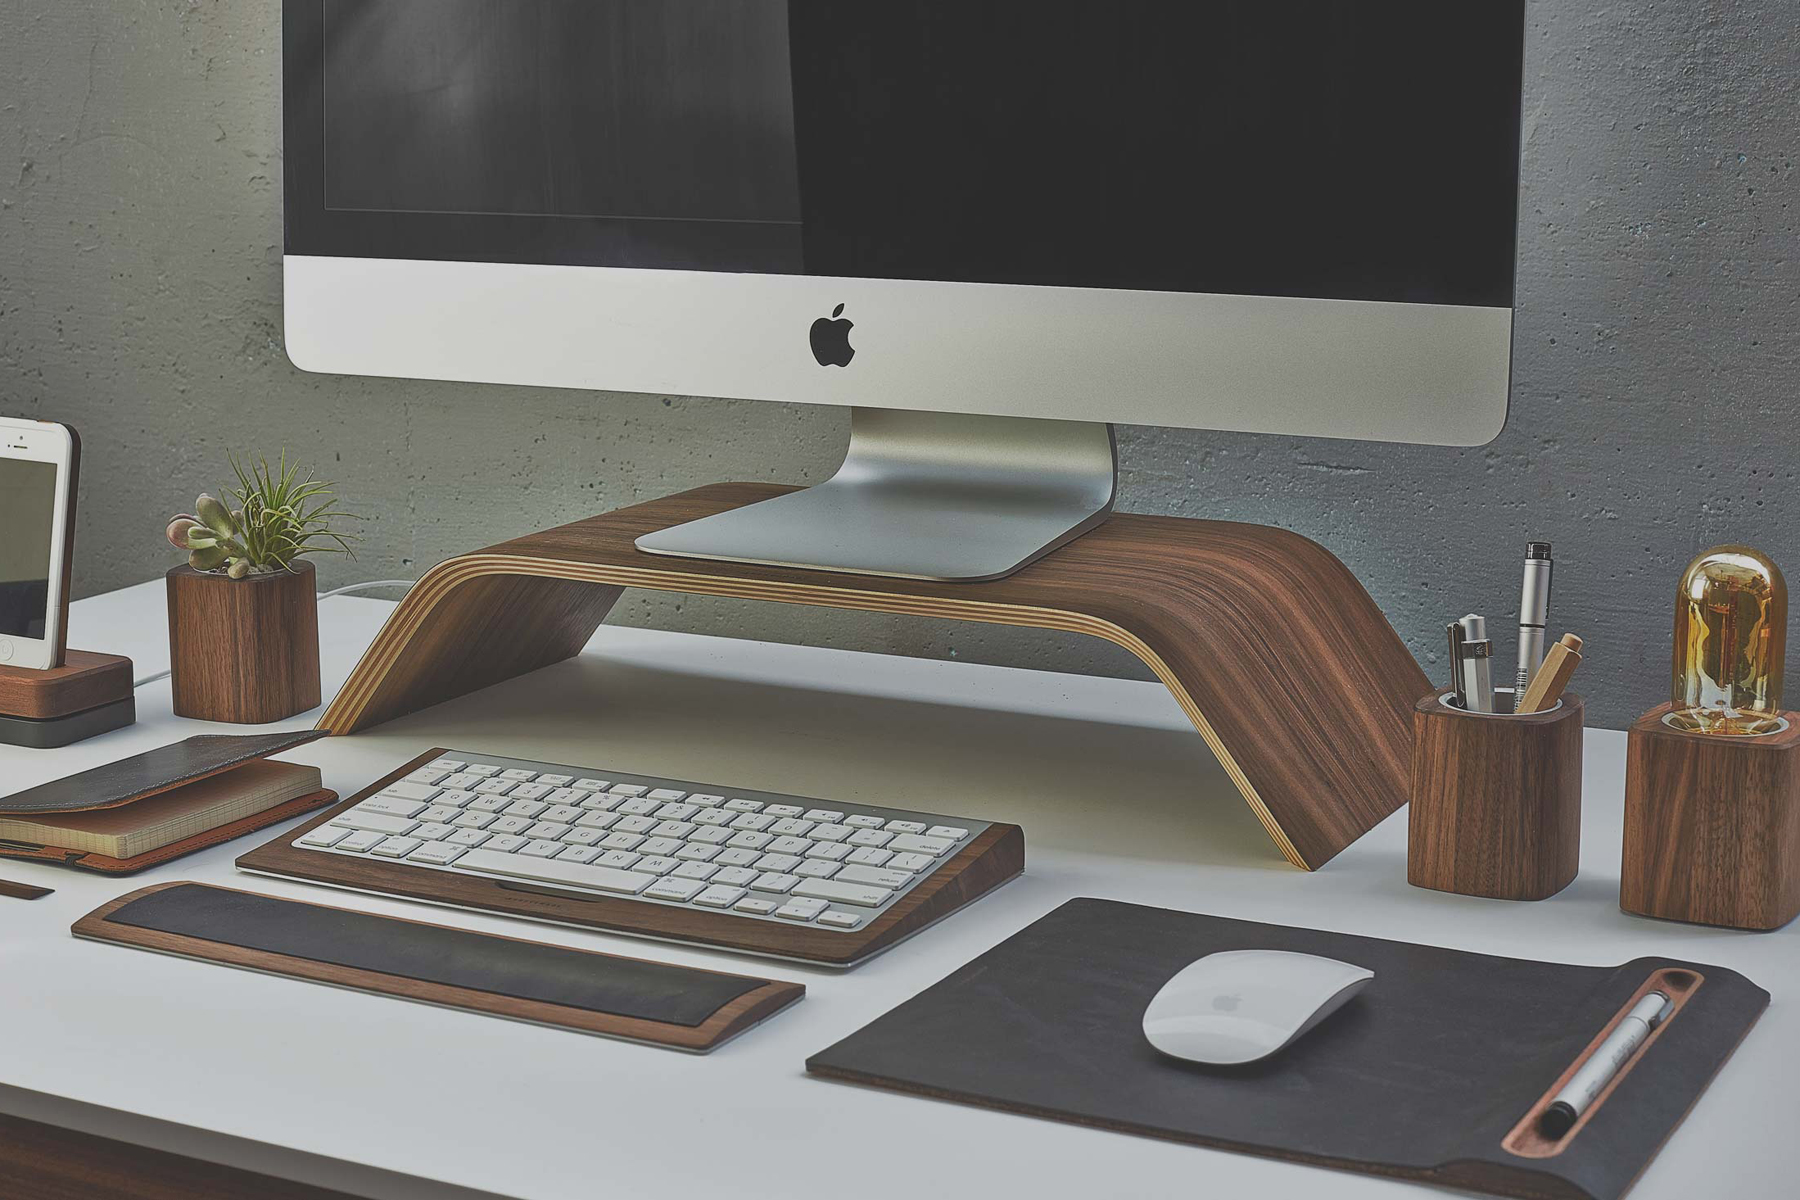 grovemade premium desktop collection